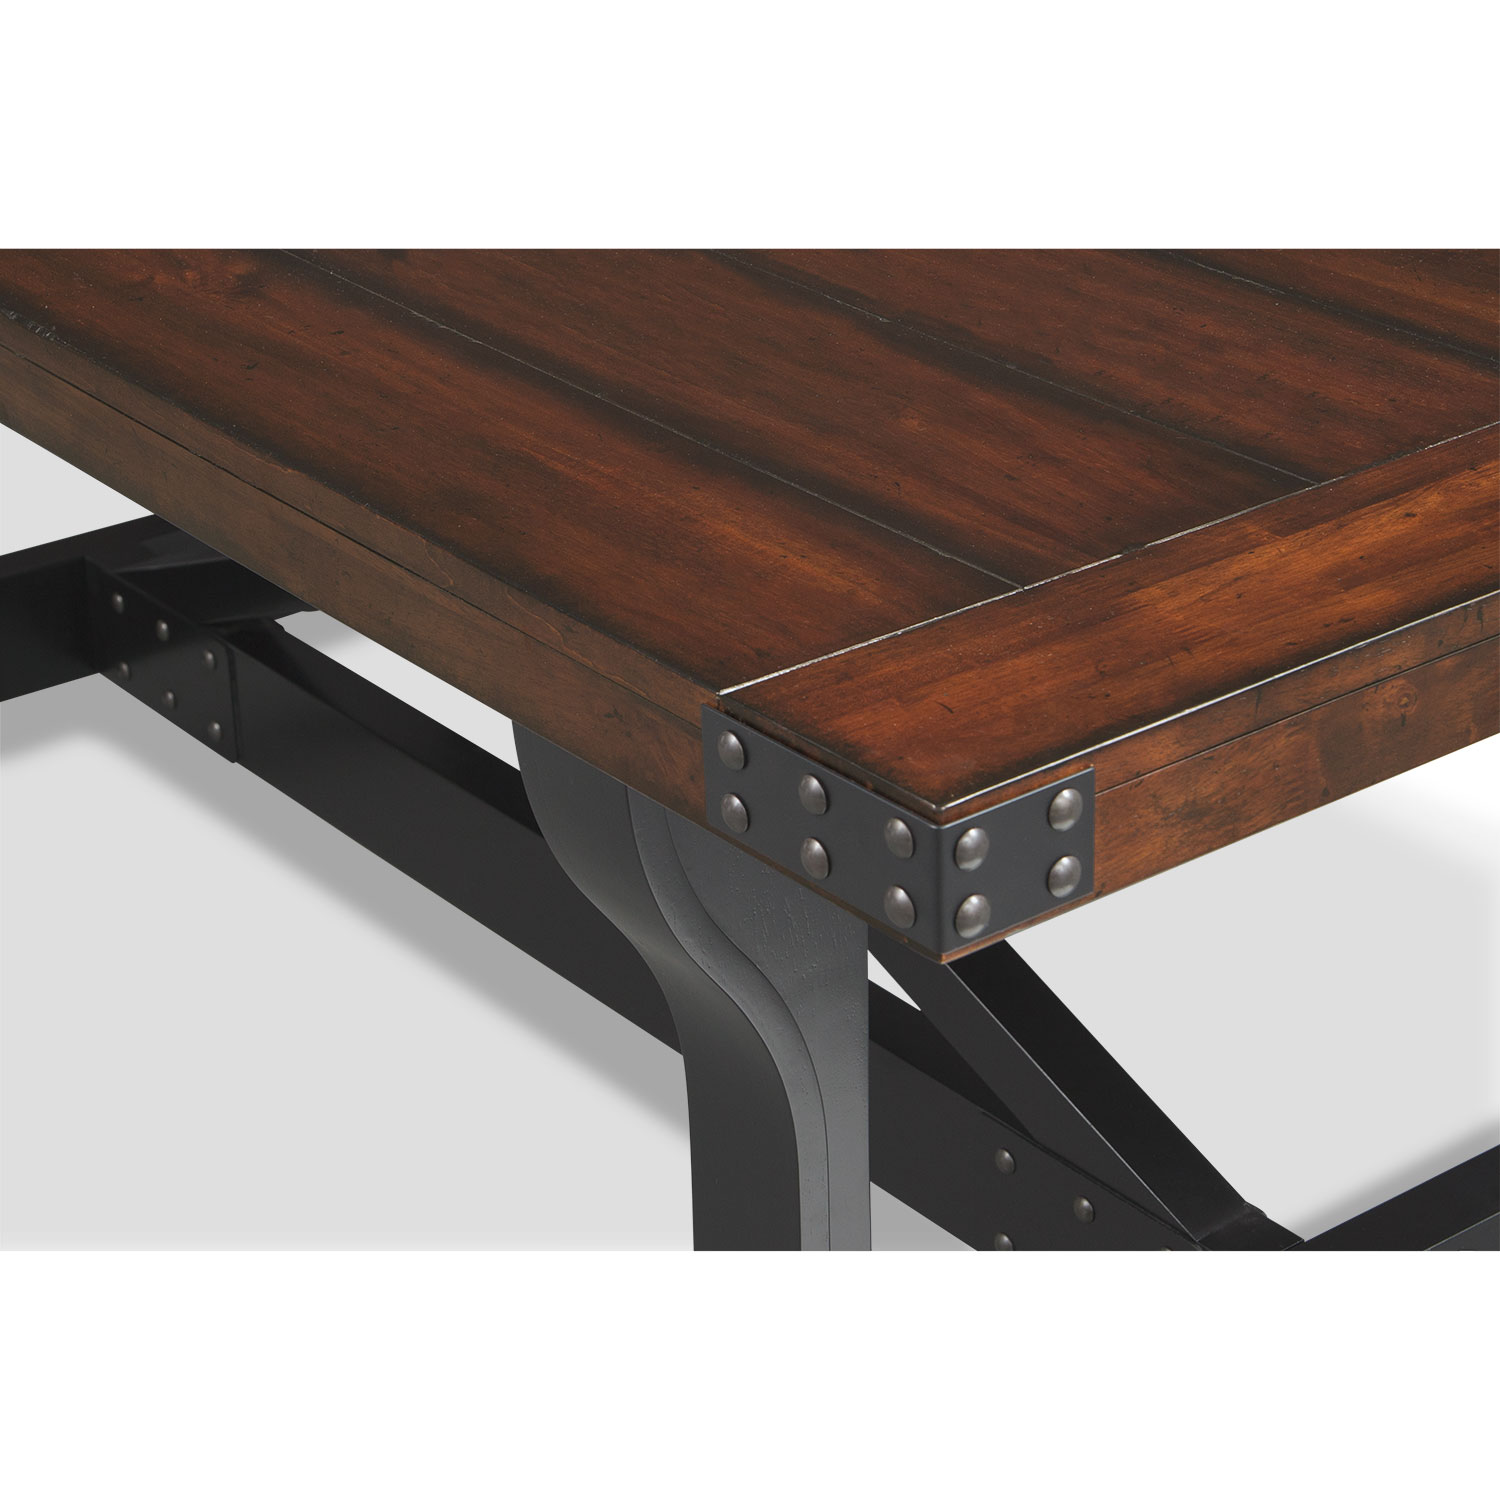 Click to change image. - Newcastle Dining Table - Mahogany American Signature Furniture